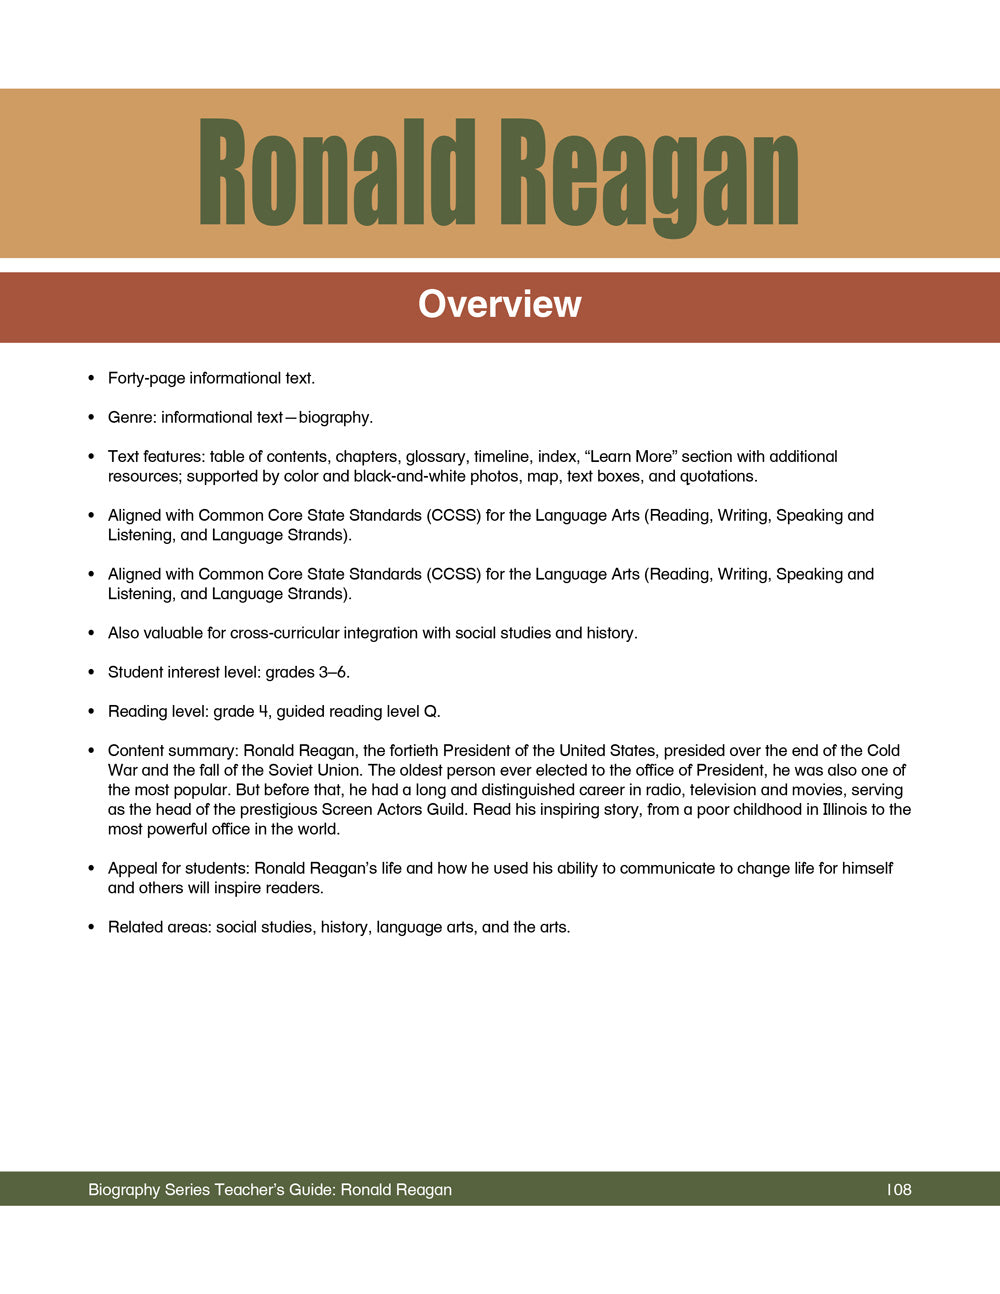 Ronald Reagan Teacher's Guide